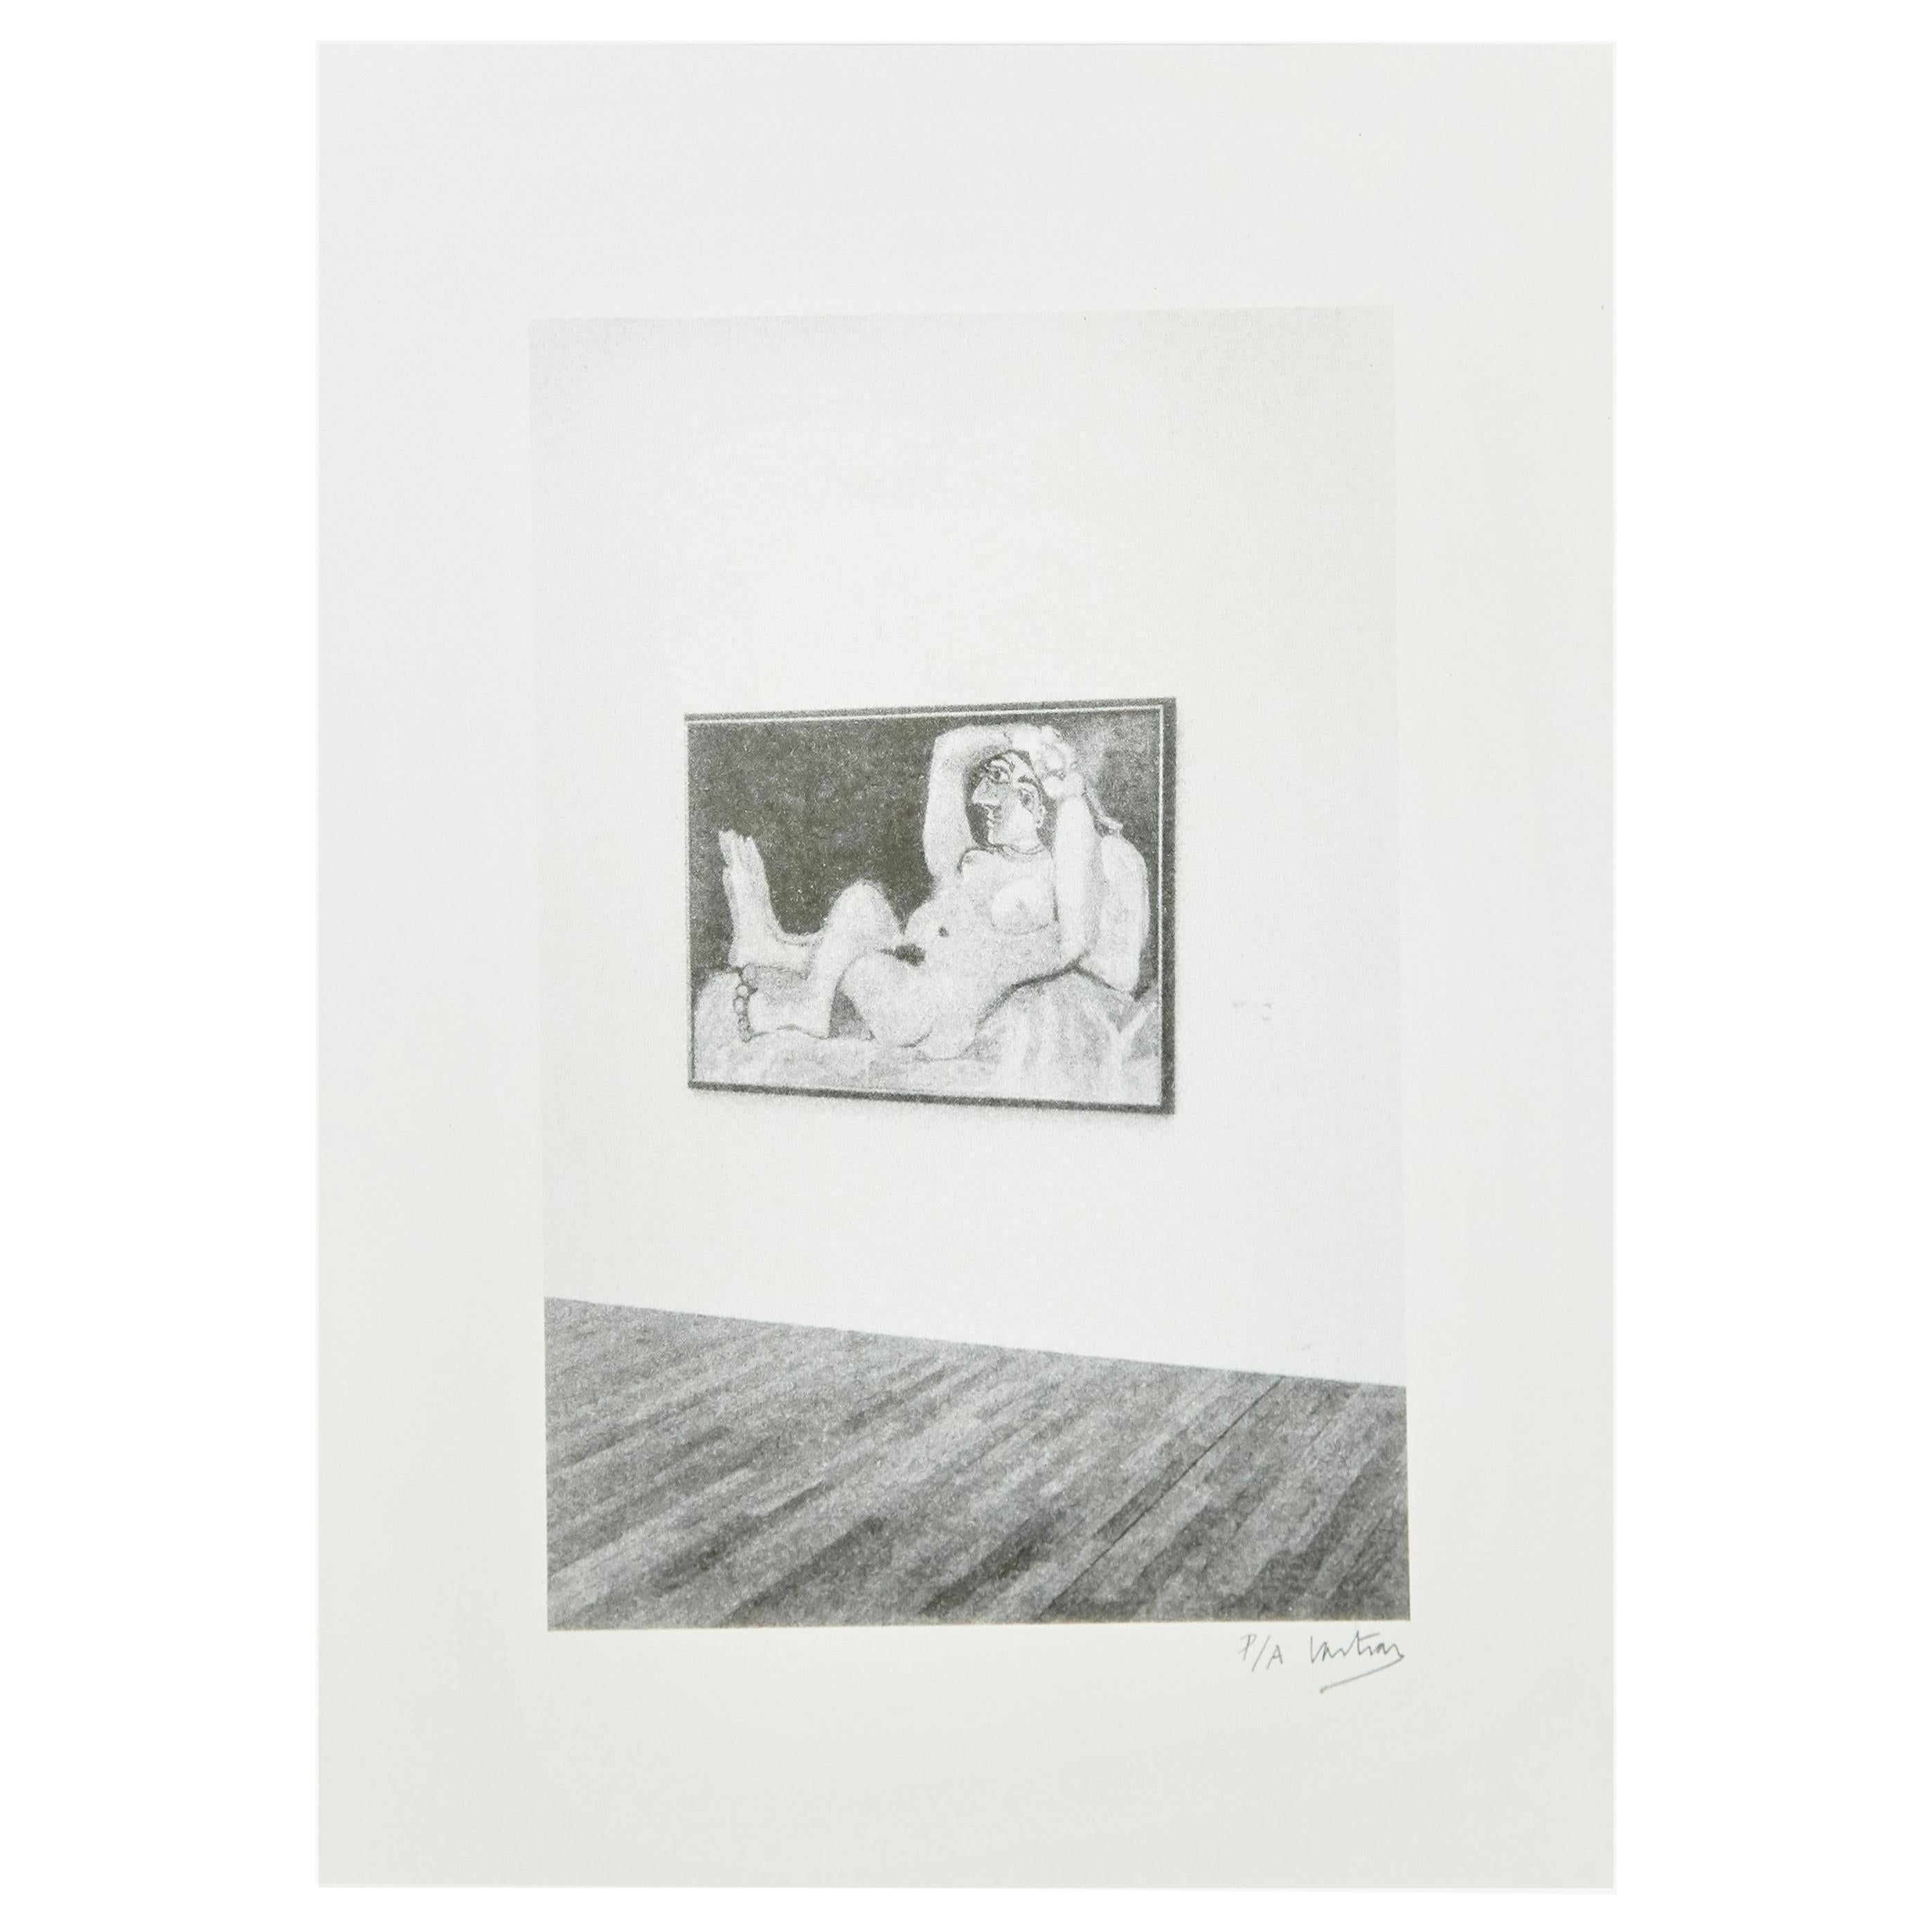 Hand Signed Lithography 'The museum' by Vastian